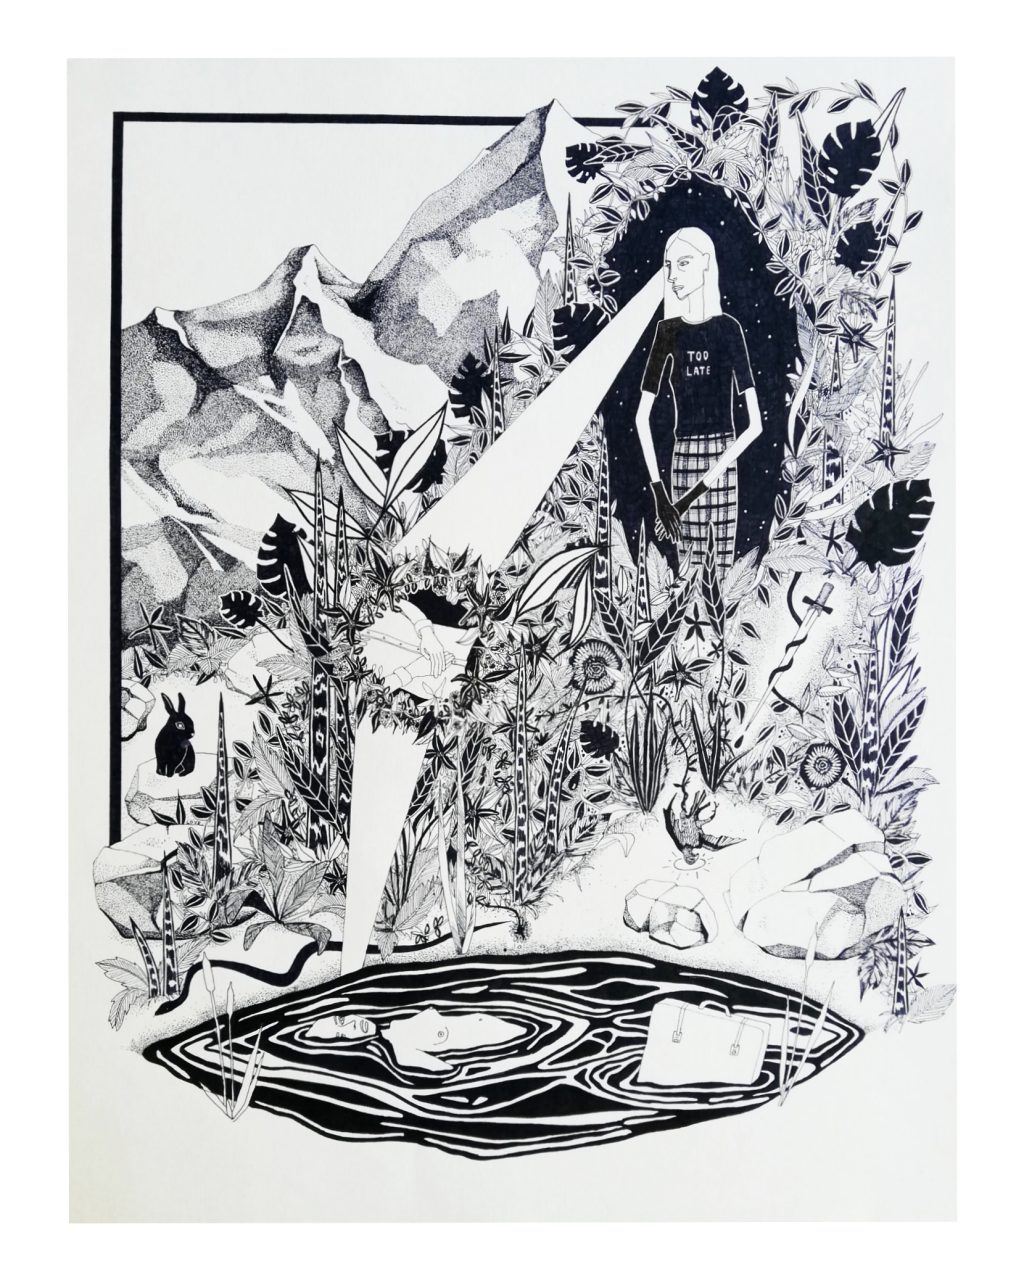 THE VISION, 49 x 61 cm, fineliner on paper, 2018.